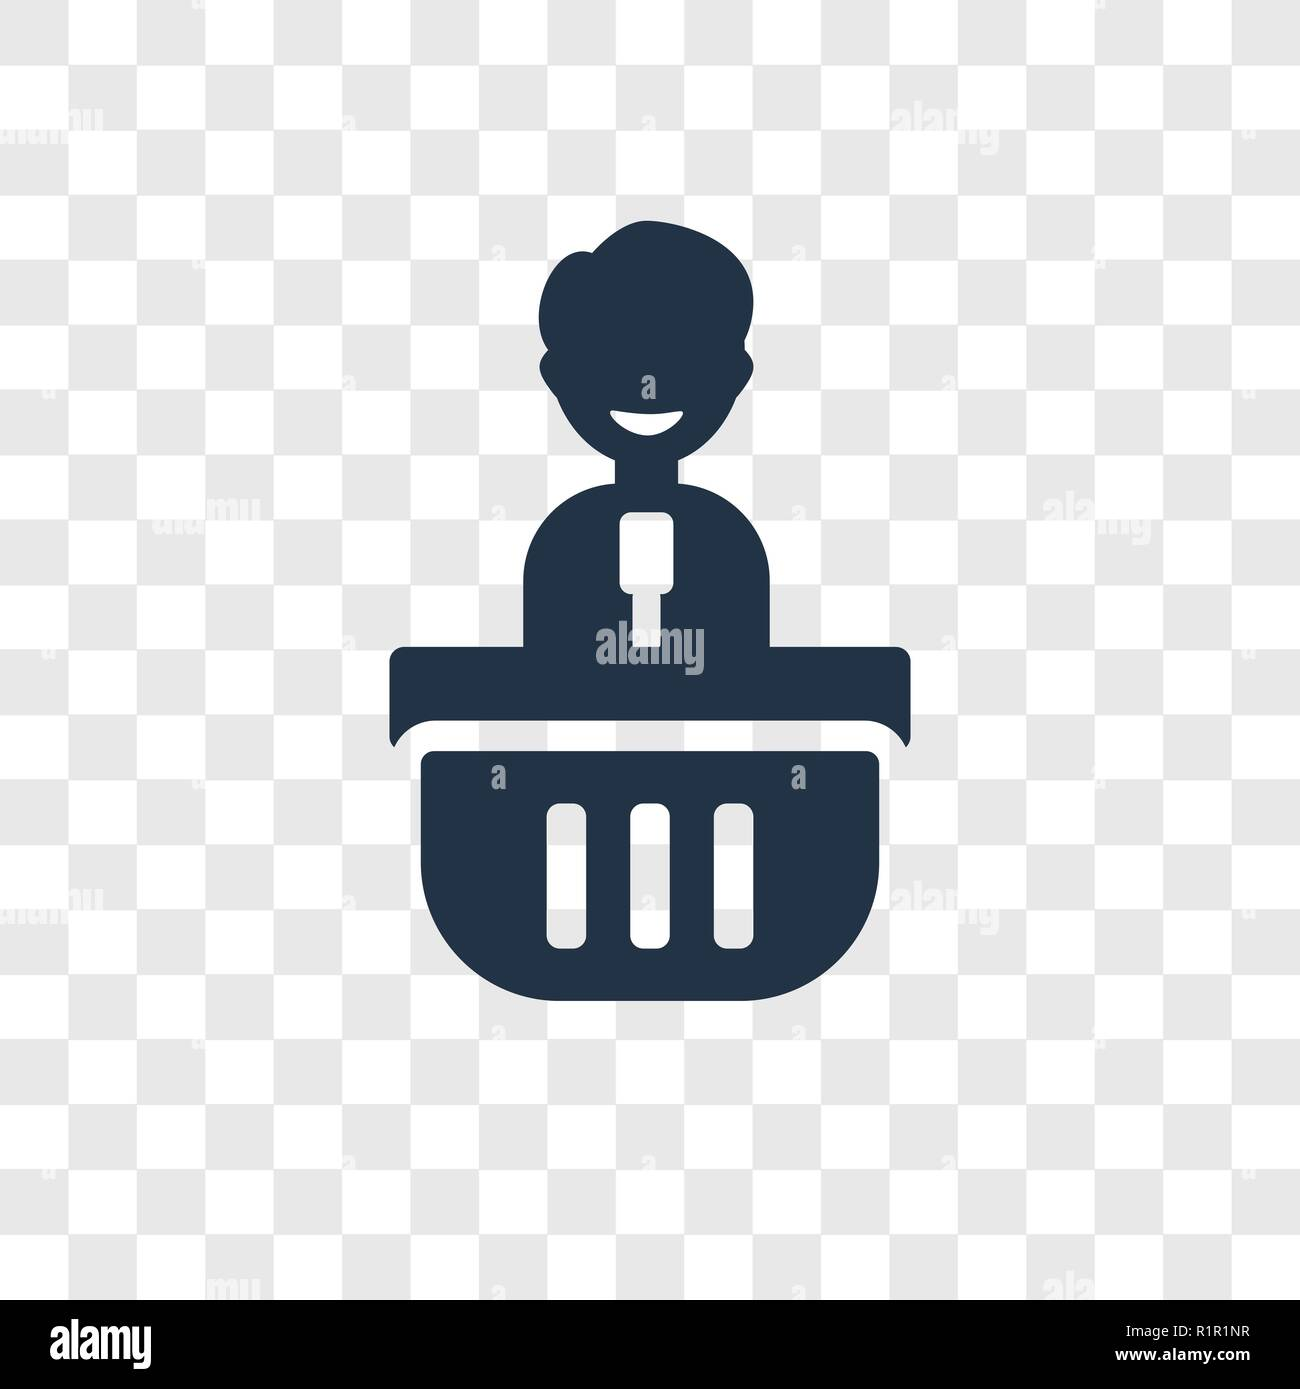 speaker vector icon isolated on transparent background speaker transparency logo concept stock vector image art alamy https www alamy com speaker vector icon isolated on transparent background speaker transparency logo concept image224855731 html